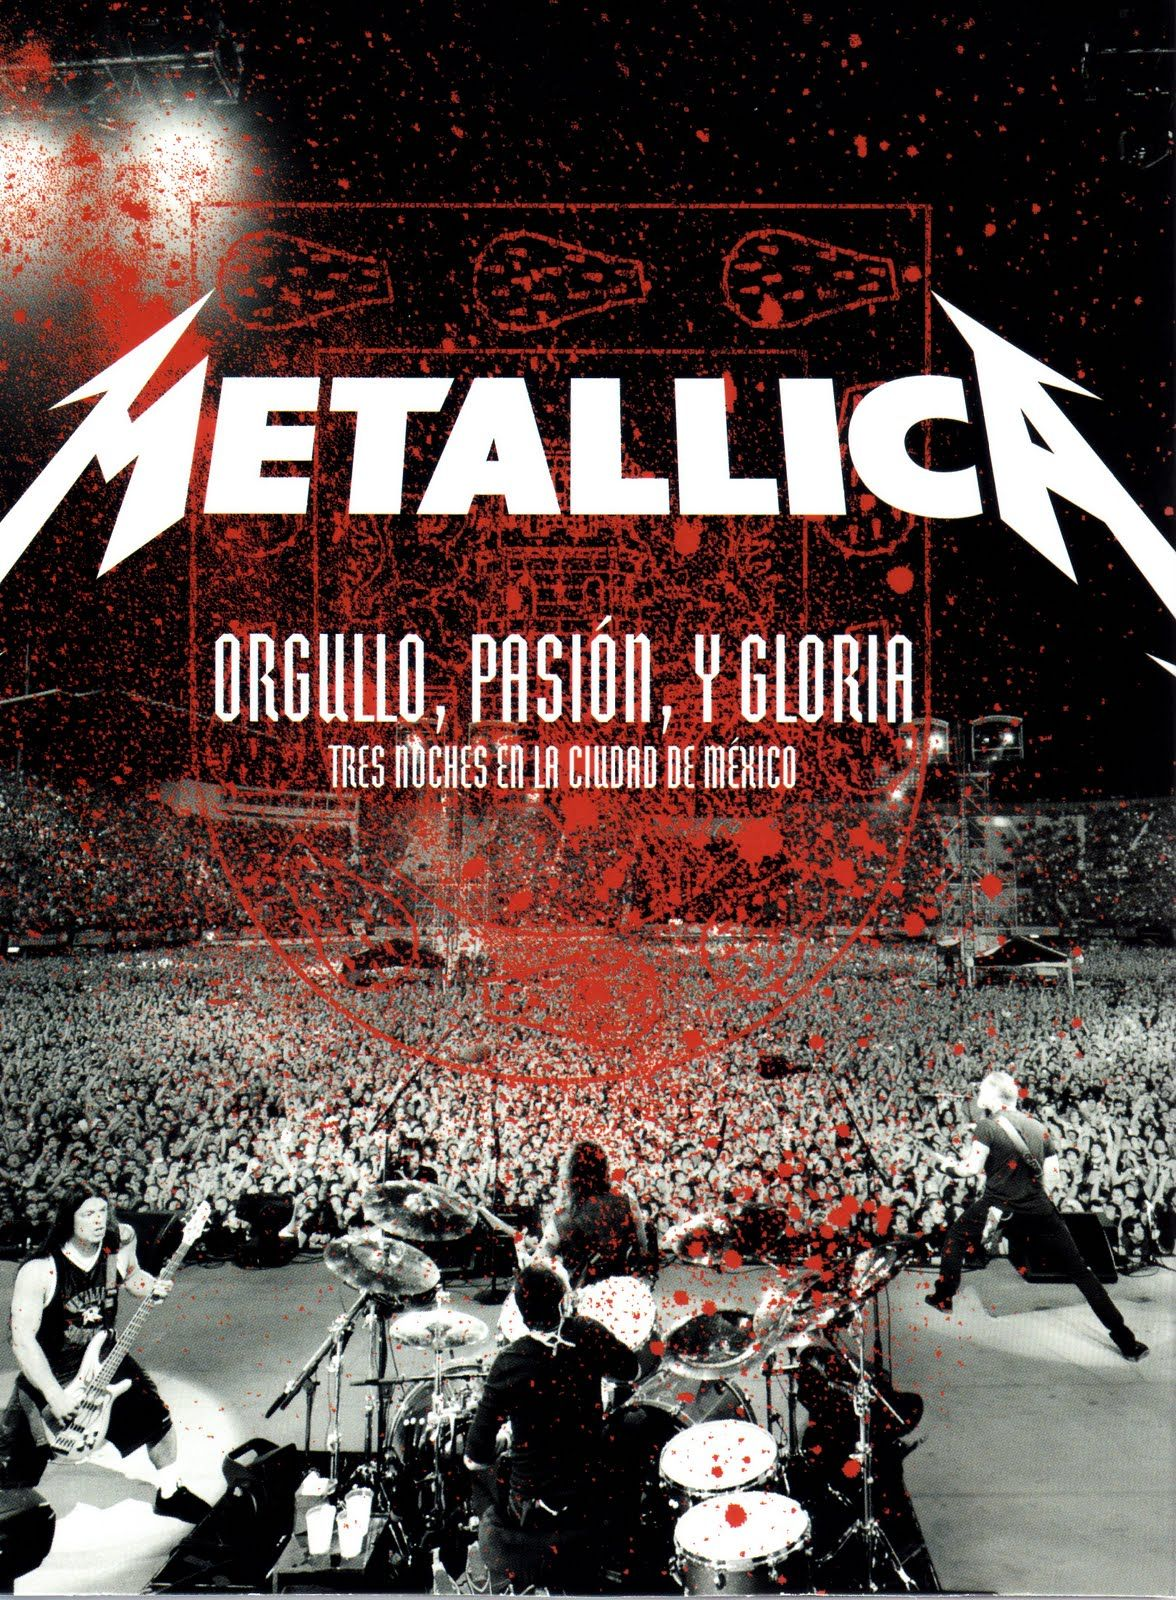 Metallica - Orgullo, Pasión Y Gloria album cover